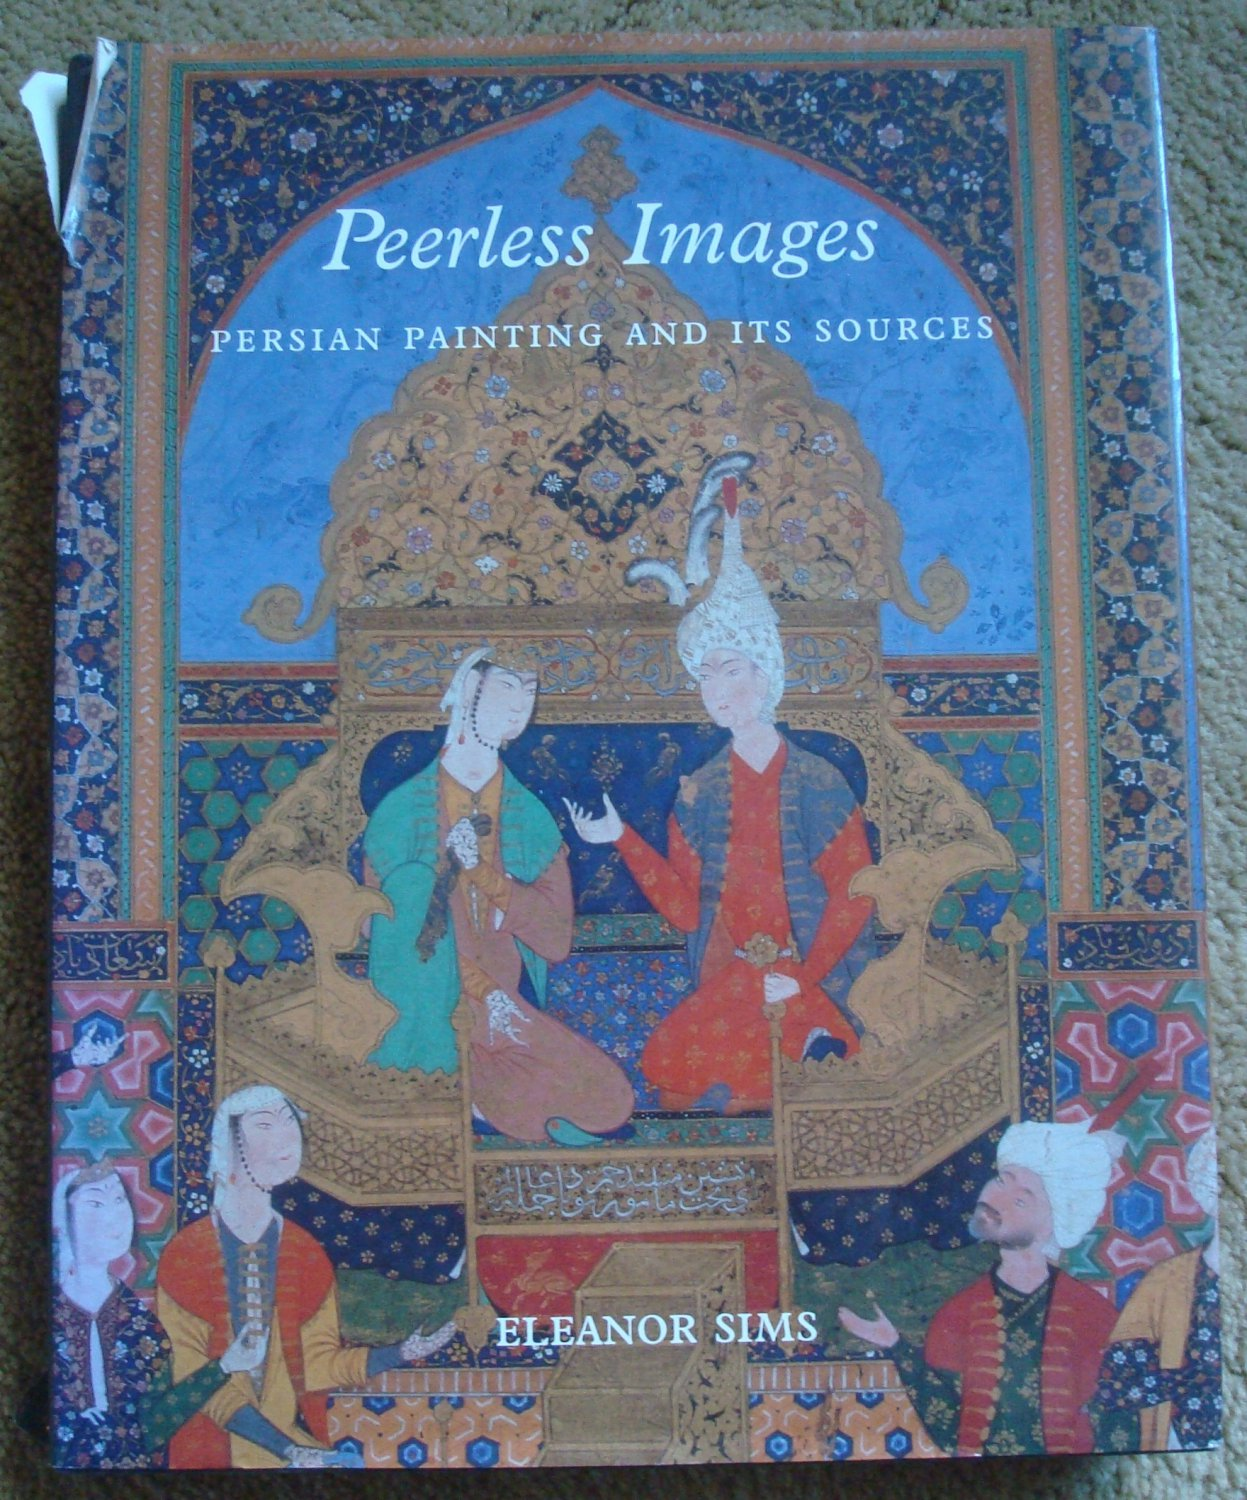 Peerless Images: Persian Painting and Its Sources